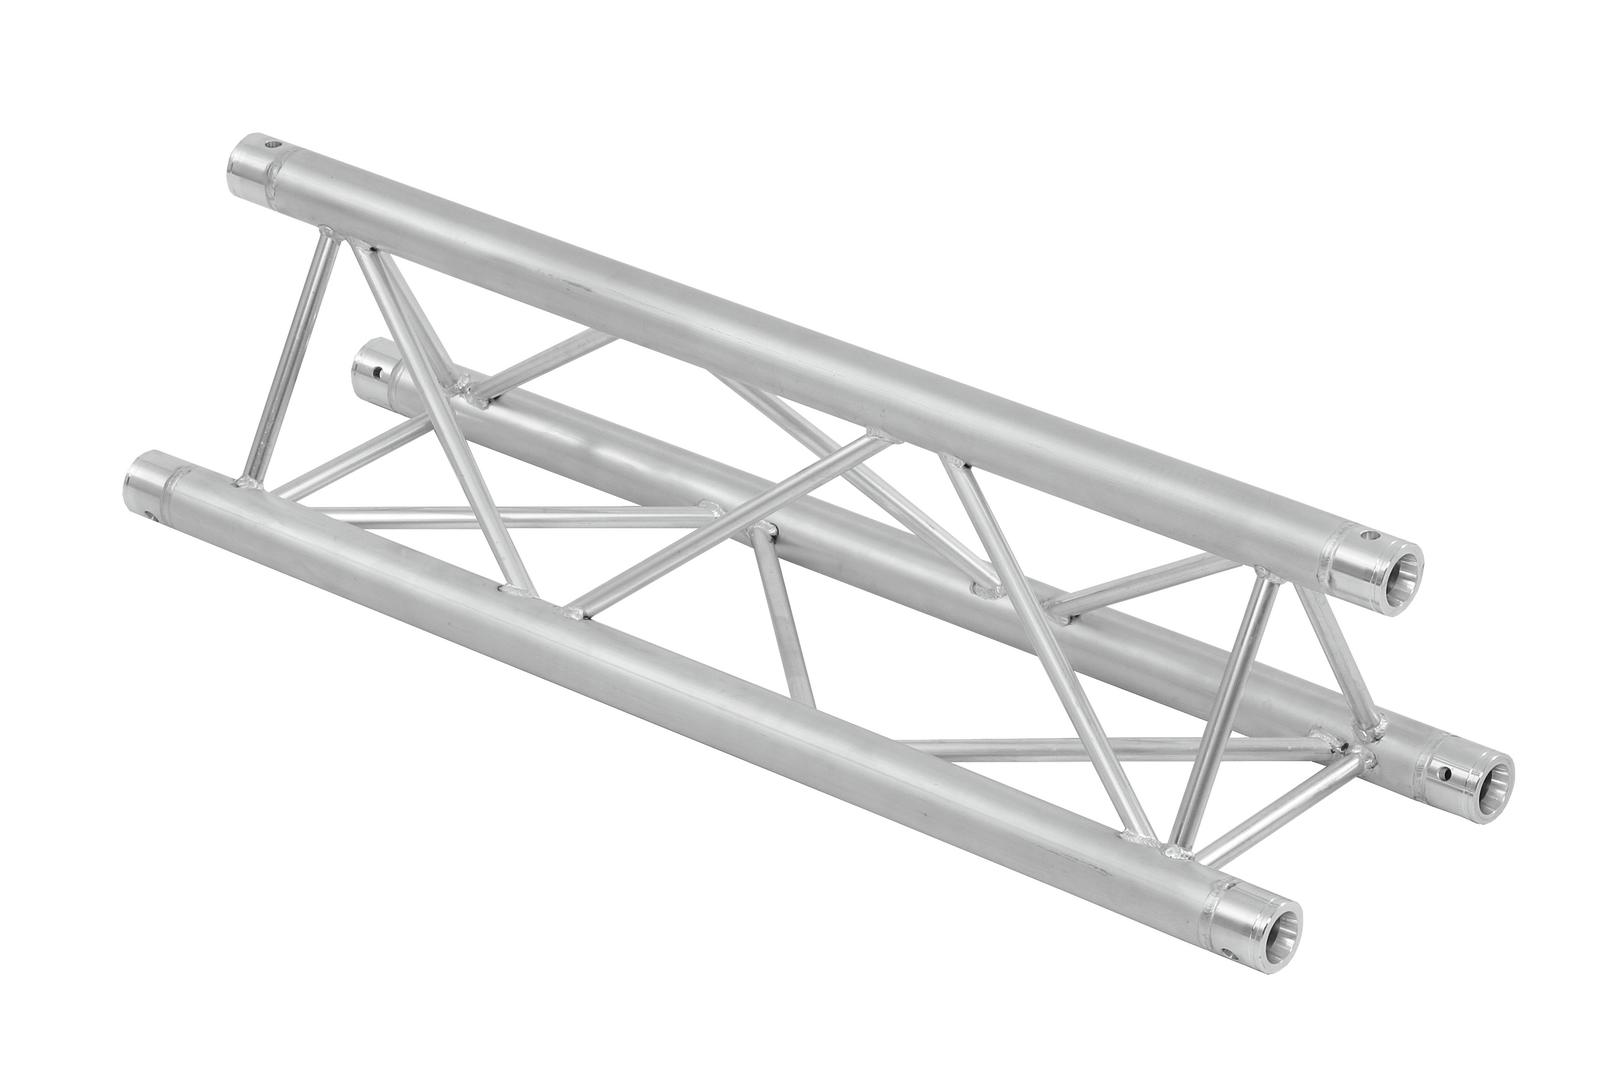 ALUTRUSS TRILOCK 6082-210 a 3 vie traverse